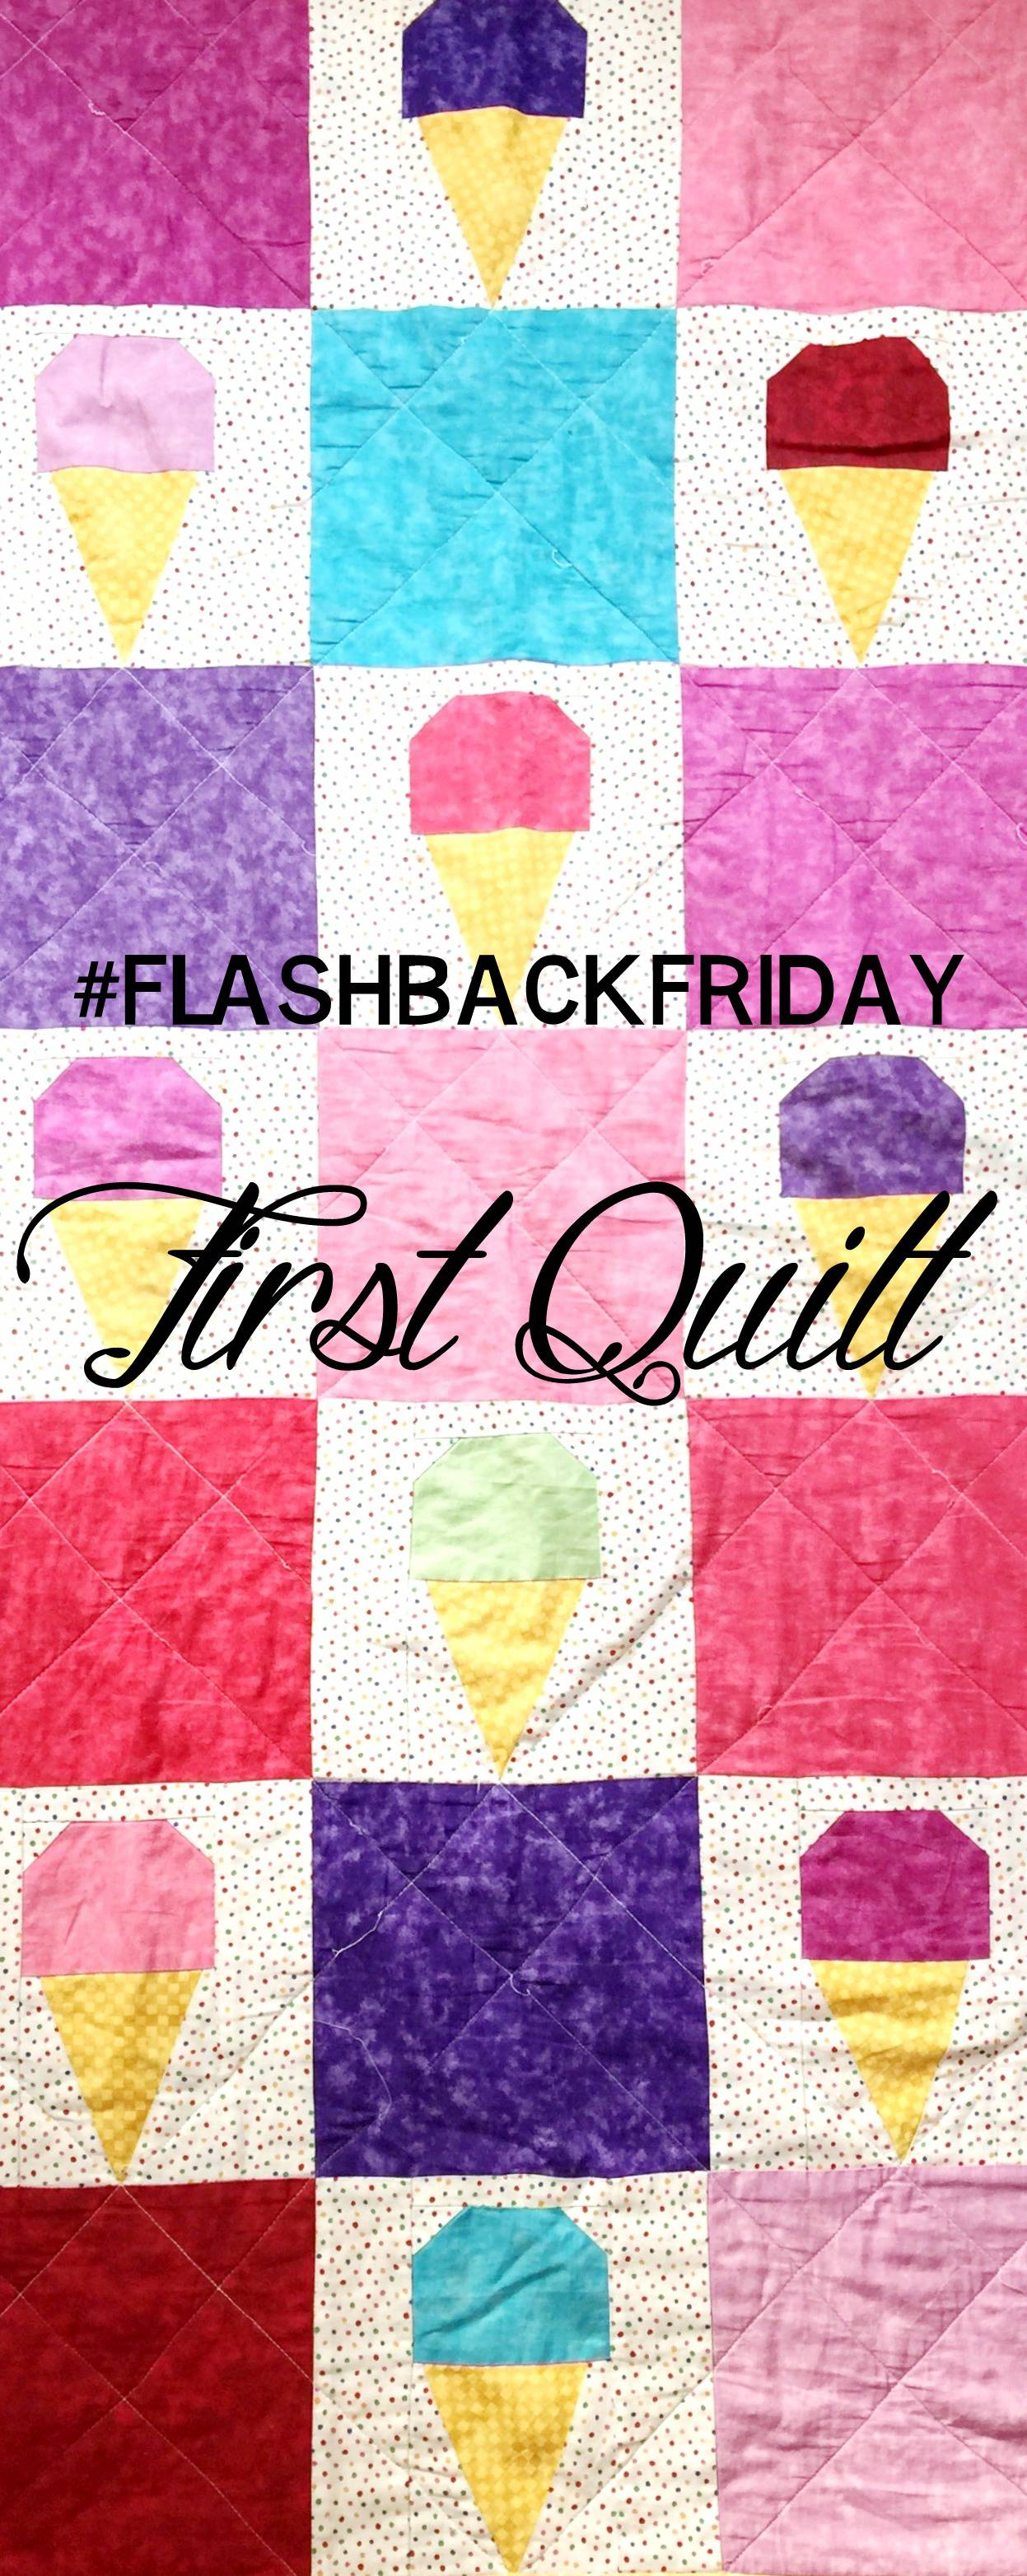 flashback friday! Technically my  second quilt, since the first was donated, but I made this one when I was 16